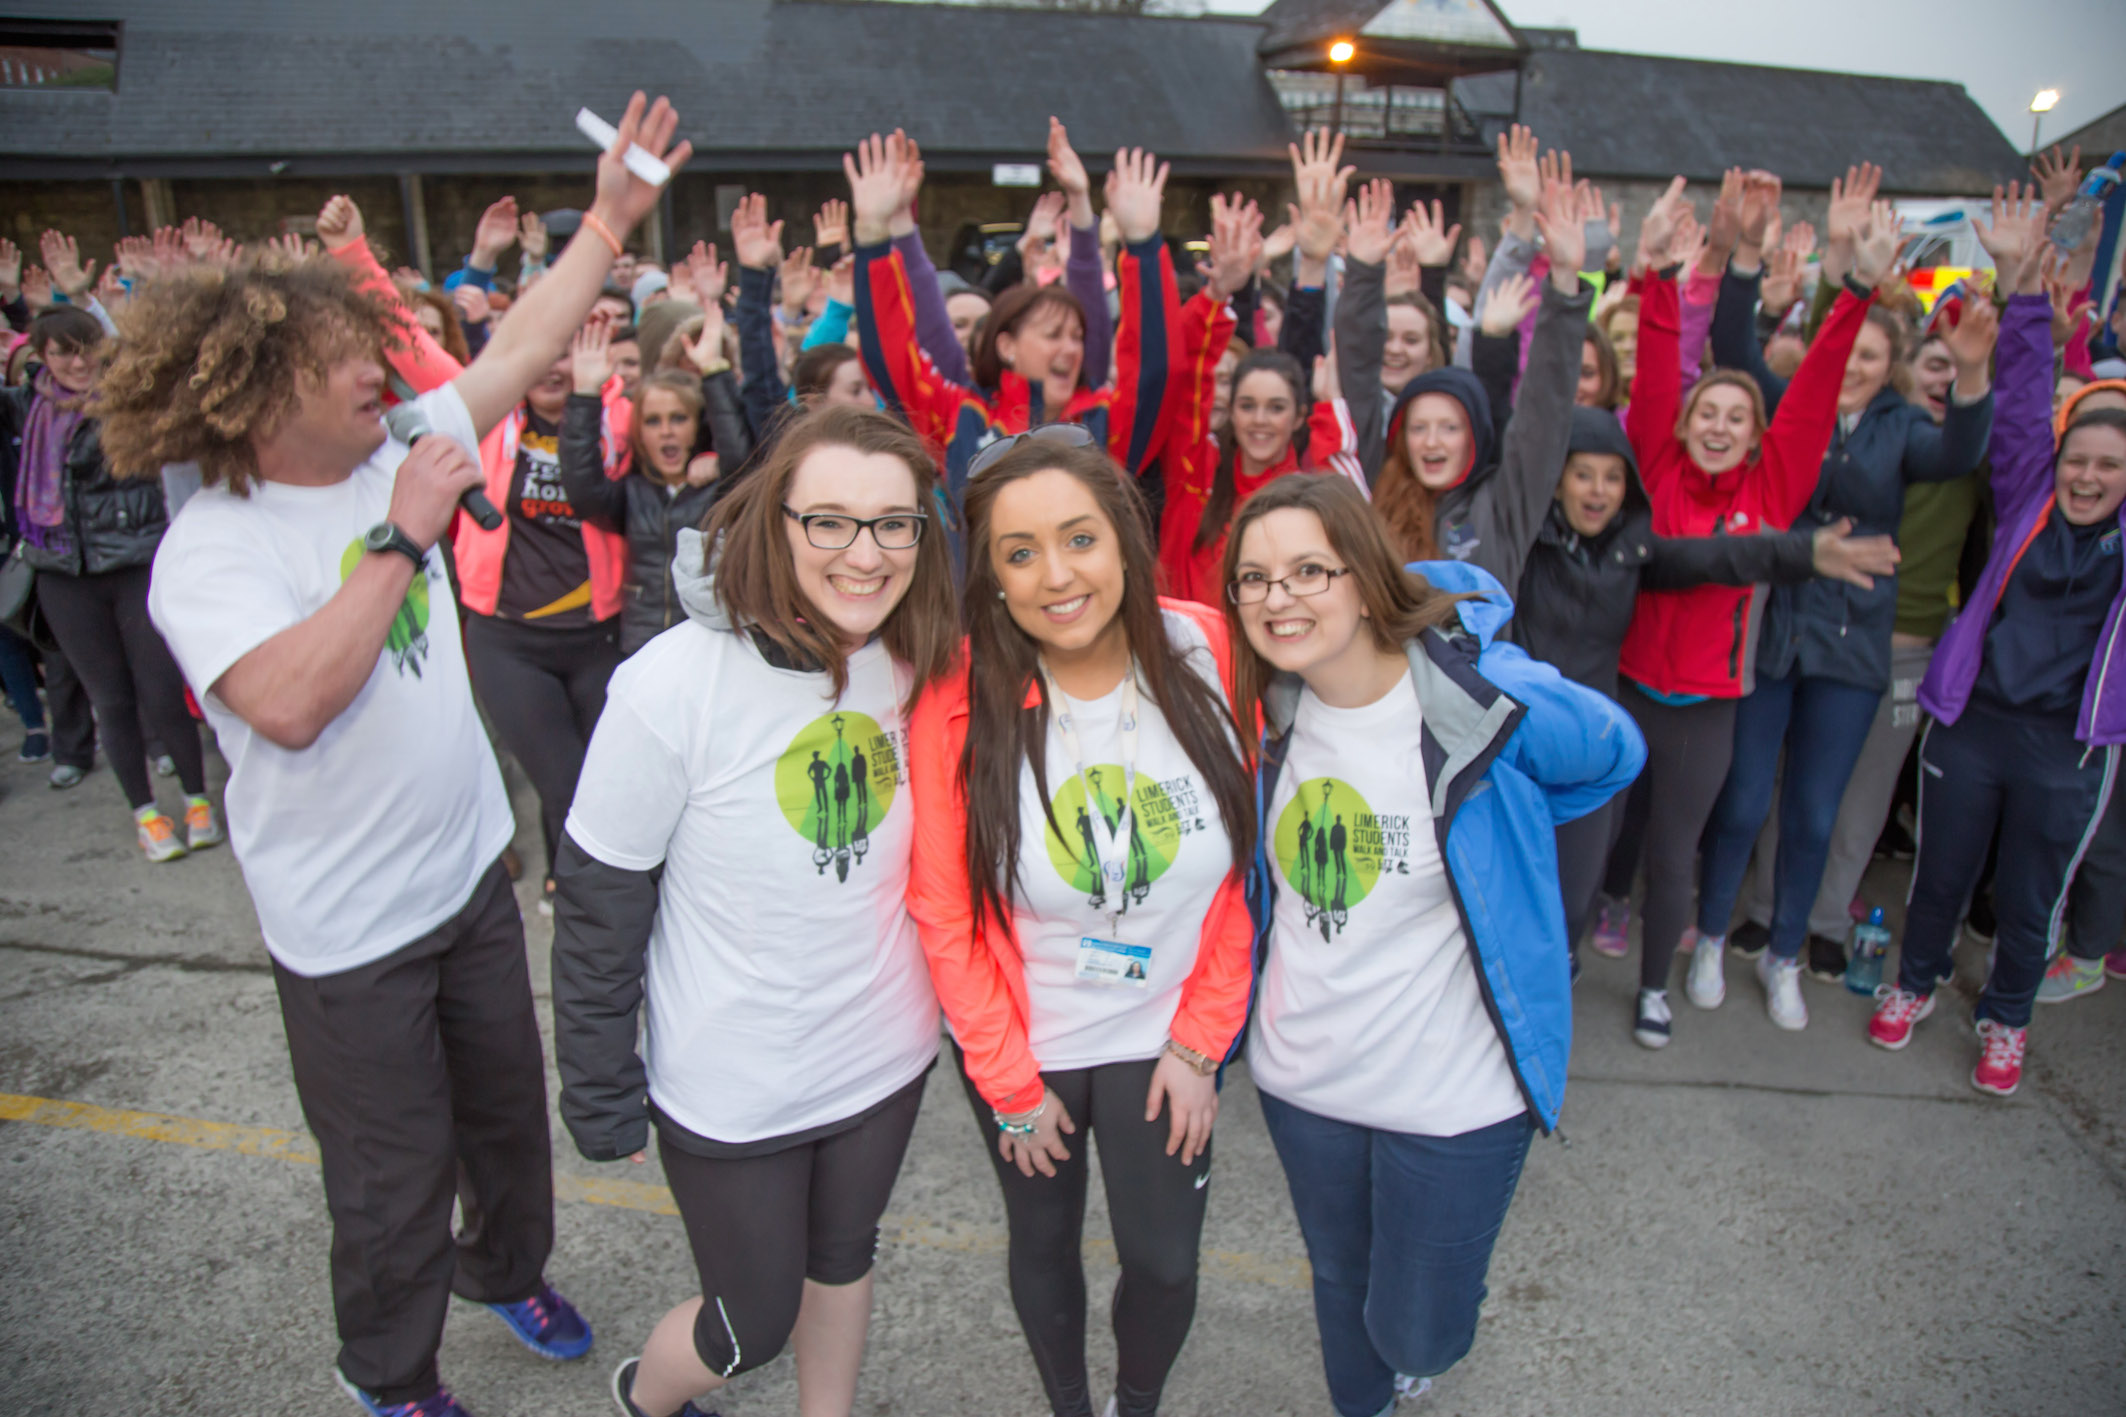 At Walk and Talk for Pieta House - Ciara Corcoran (Welfare Ul), Alison Dervan (Mary I Vice president), Mairead Keheo (LIT Vice President)